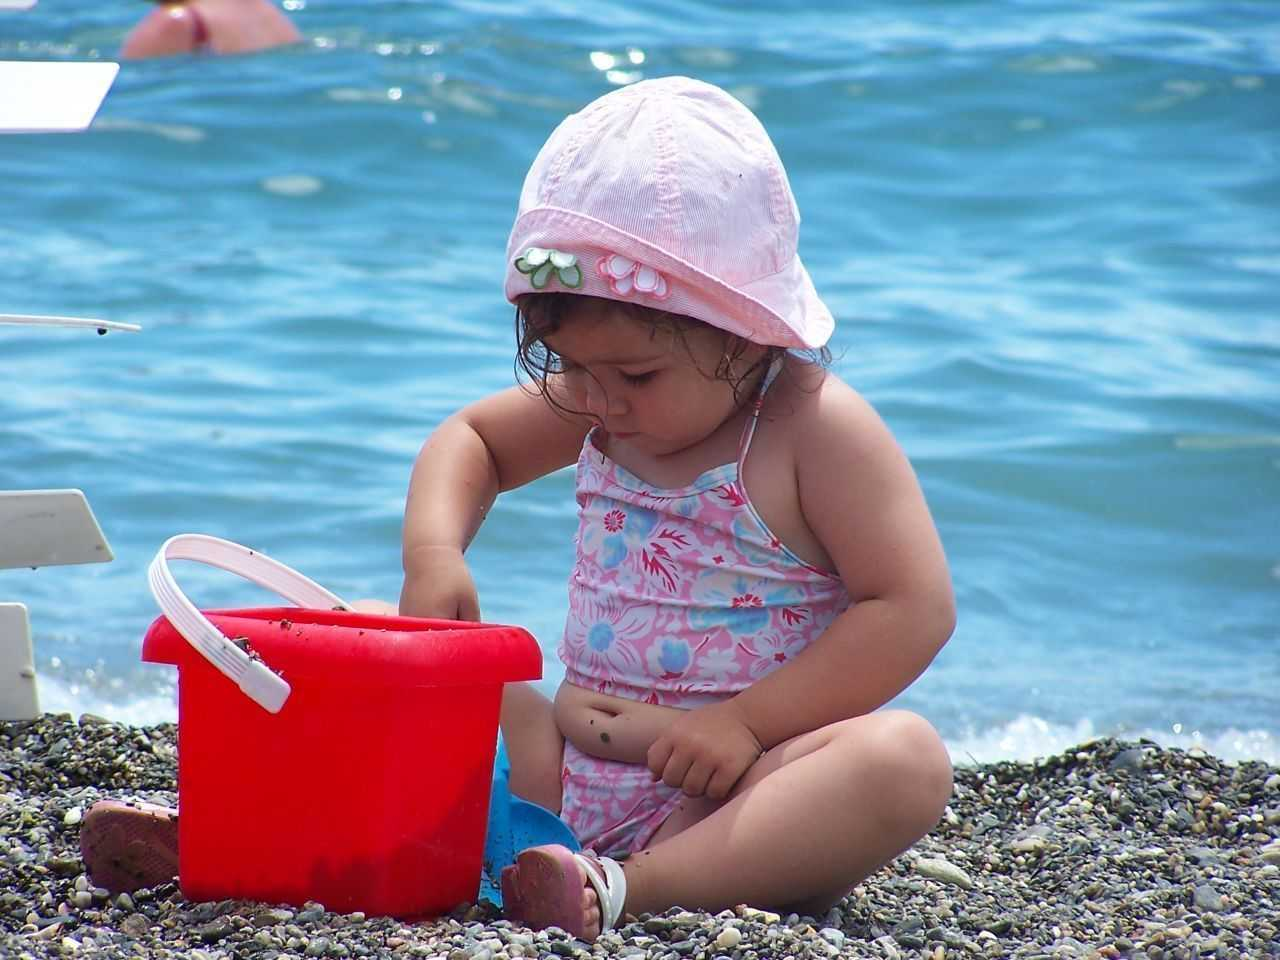 CREDIT: Small girl on a beach with a red bucket and blue spade